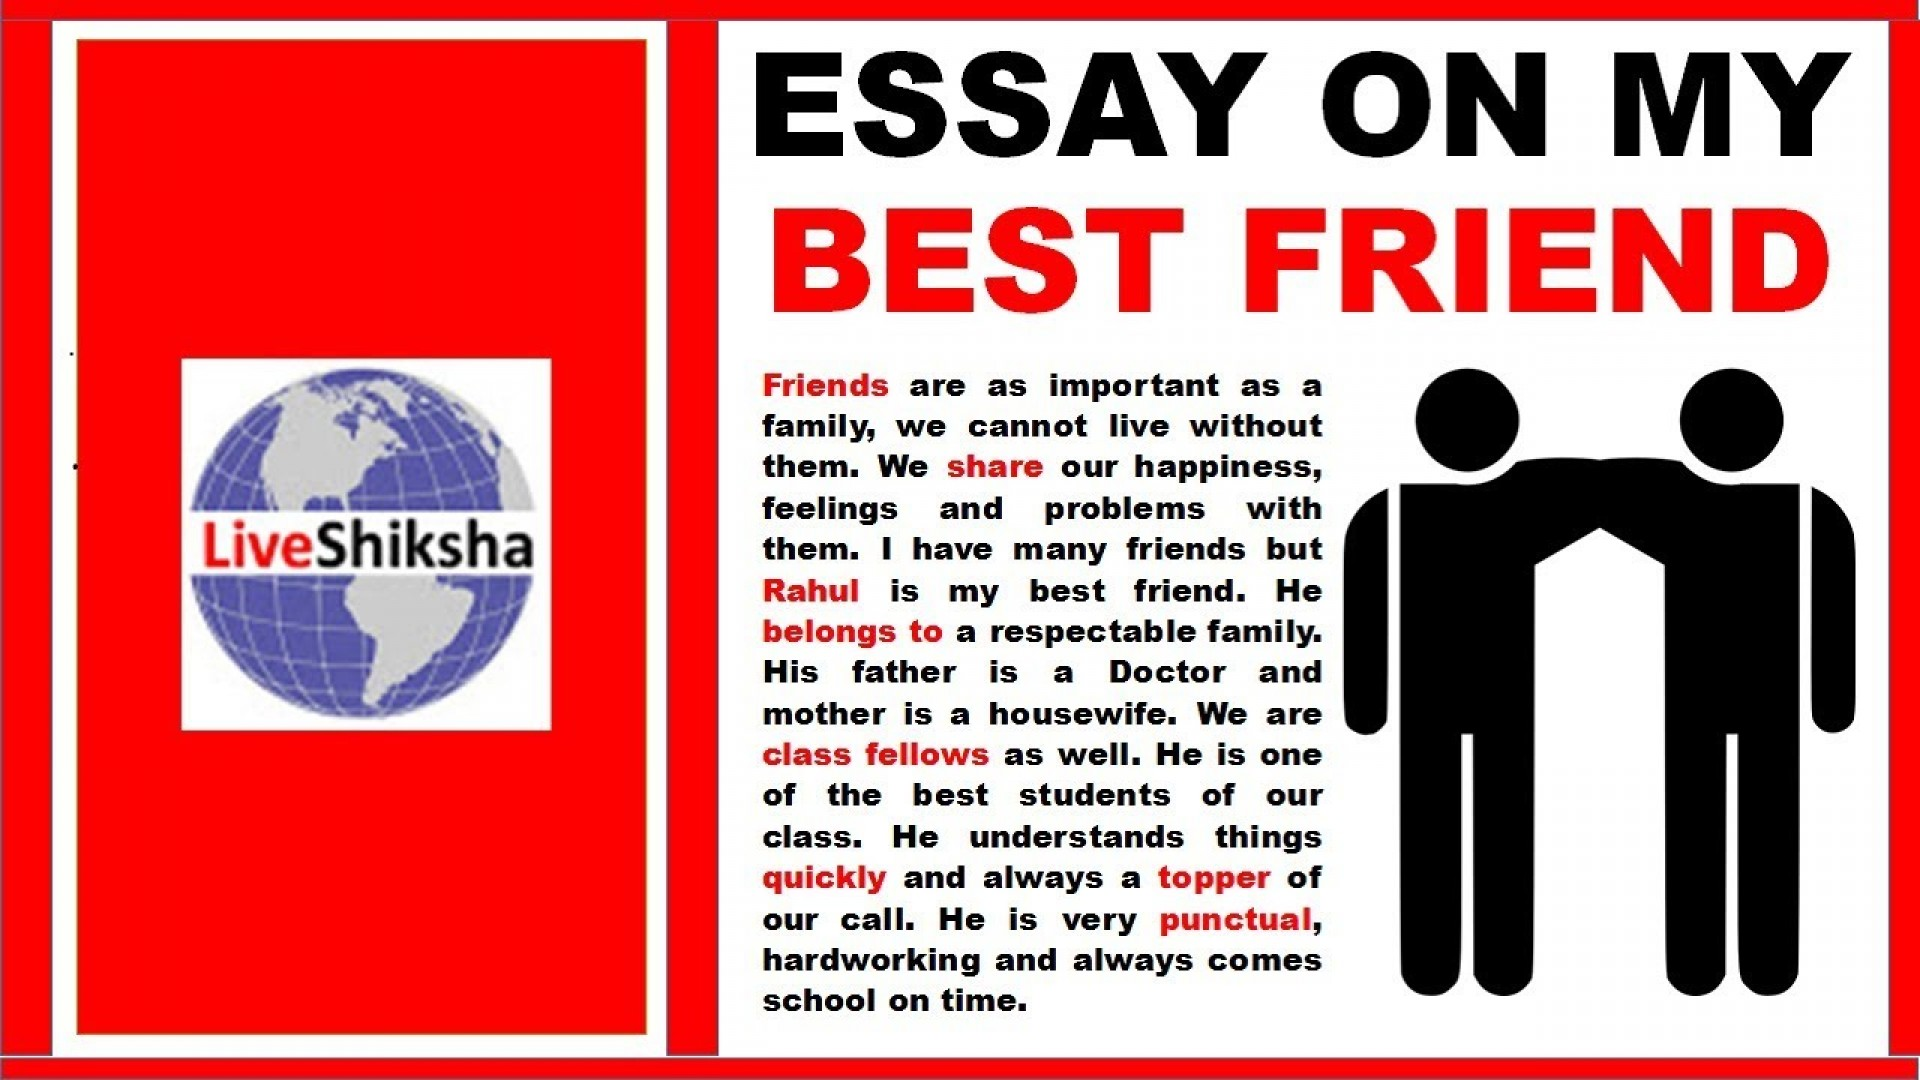 001 My Friend Essay Example Awesome In Marathi For Class 5 1920